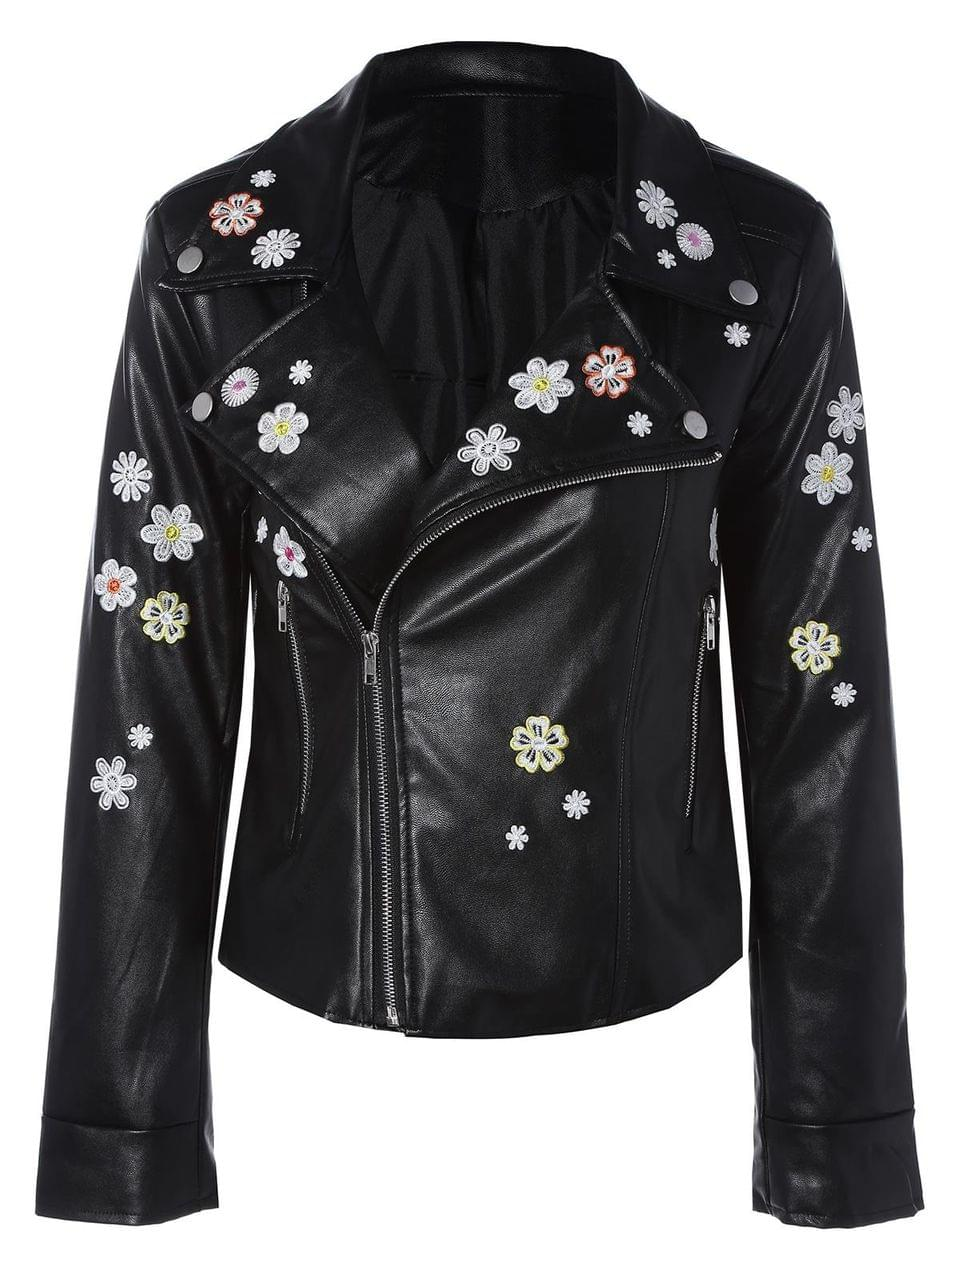 Women's Floral Embroidered Lapel Collar Faux Leather Jacket - Black M